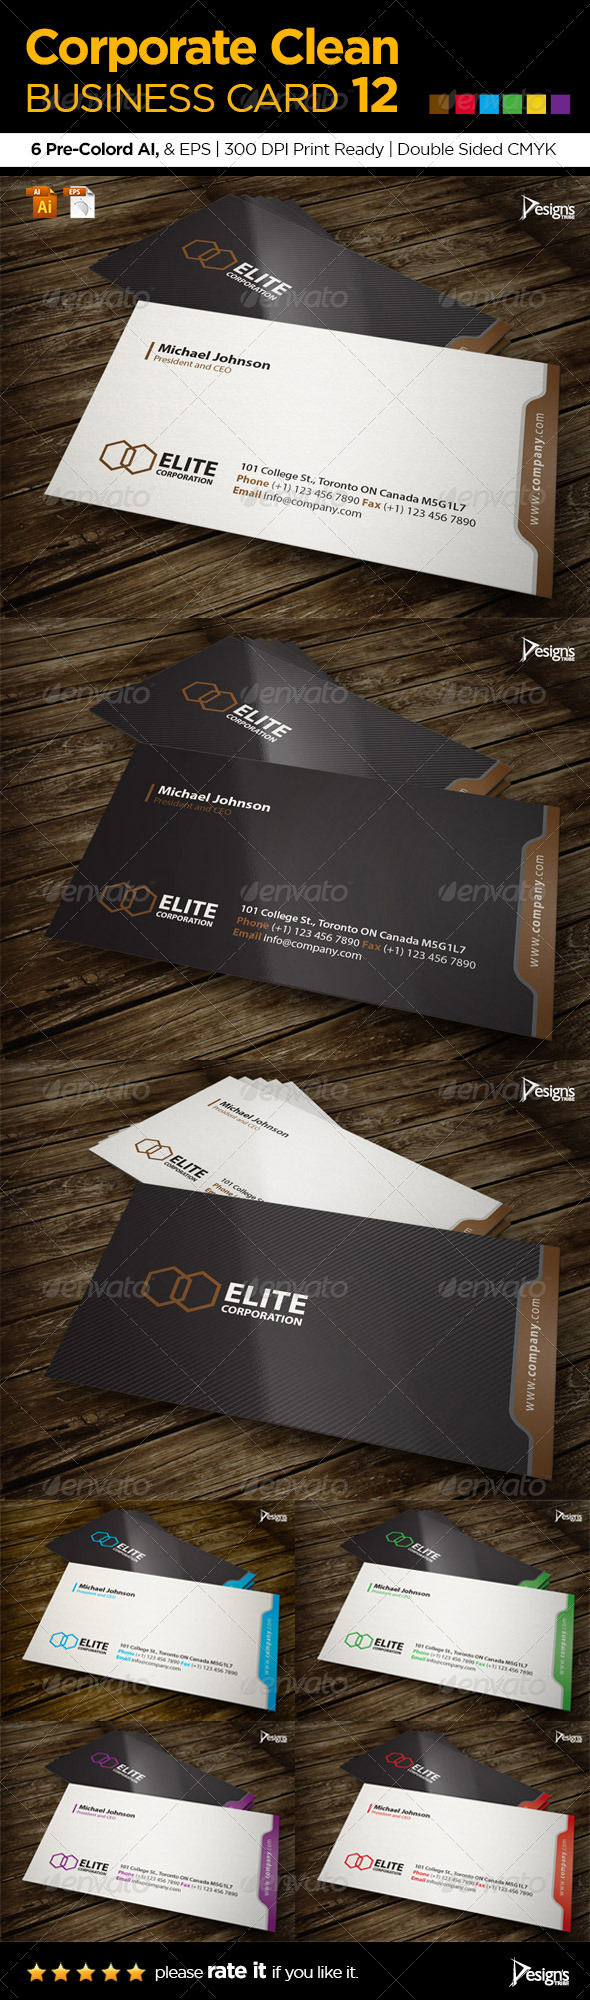 GraphicRiver Corporate Clean Business Card 12 6081286